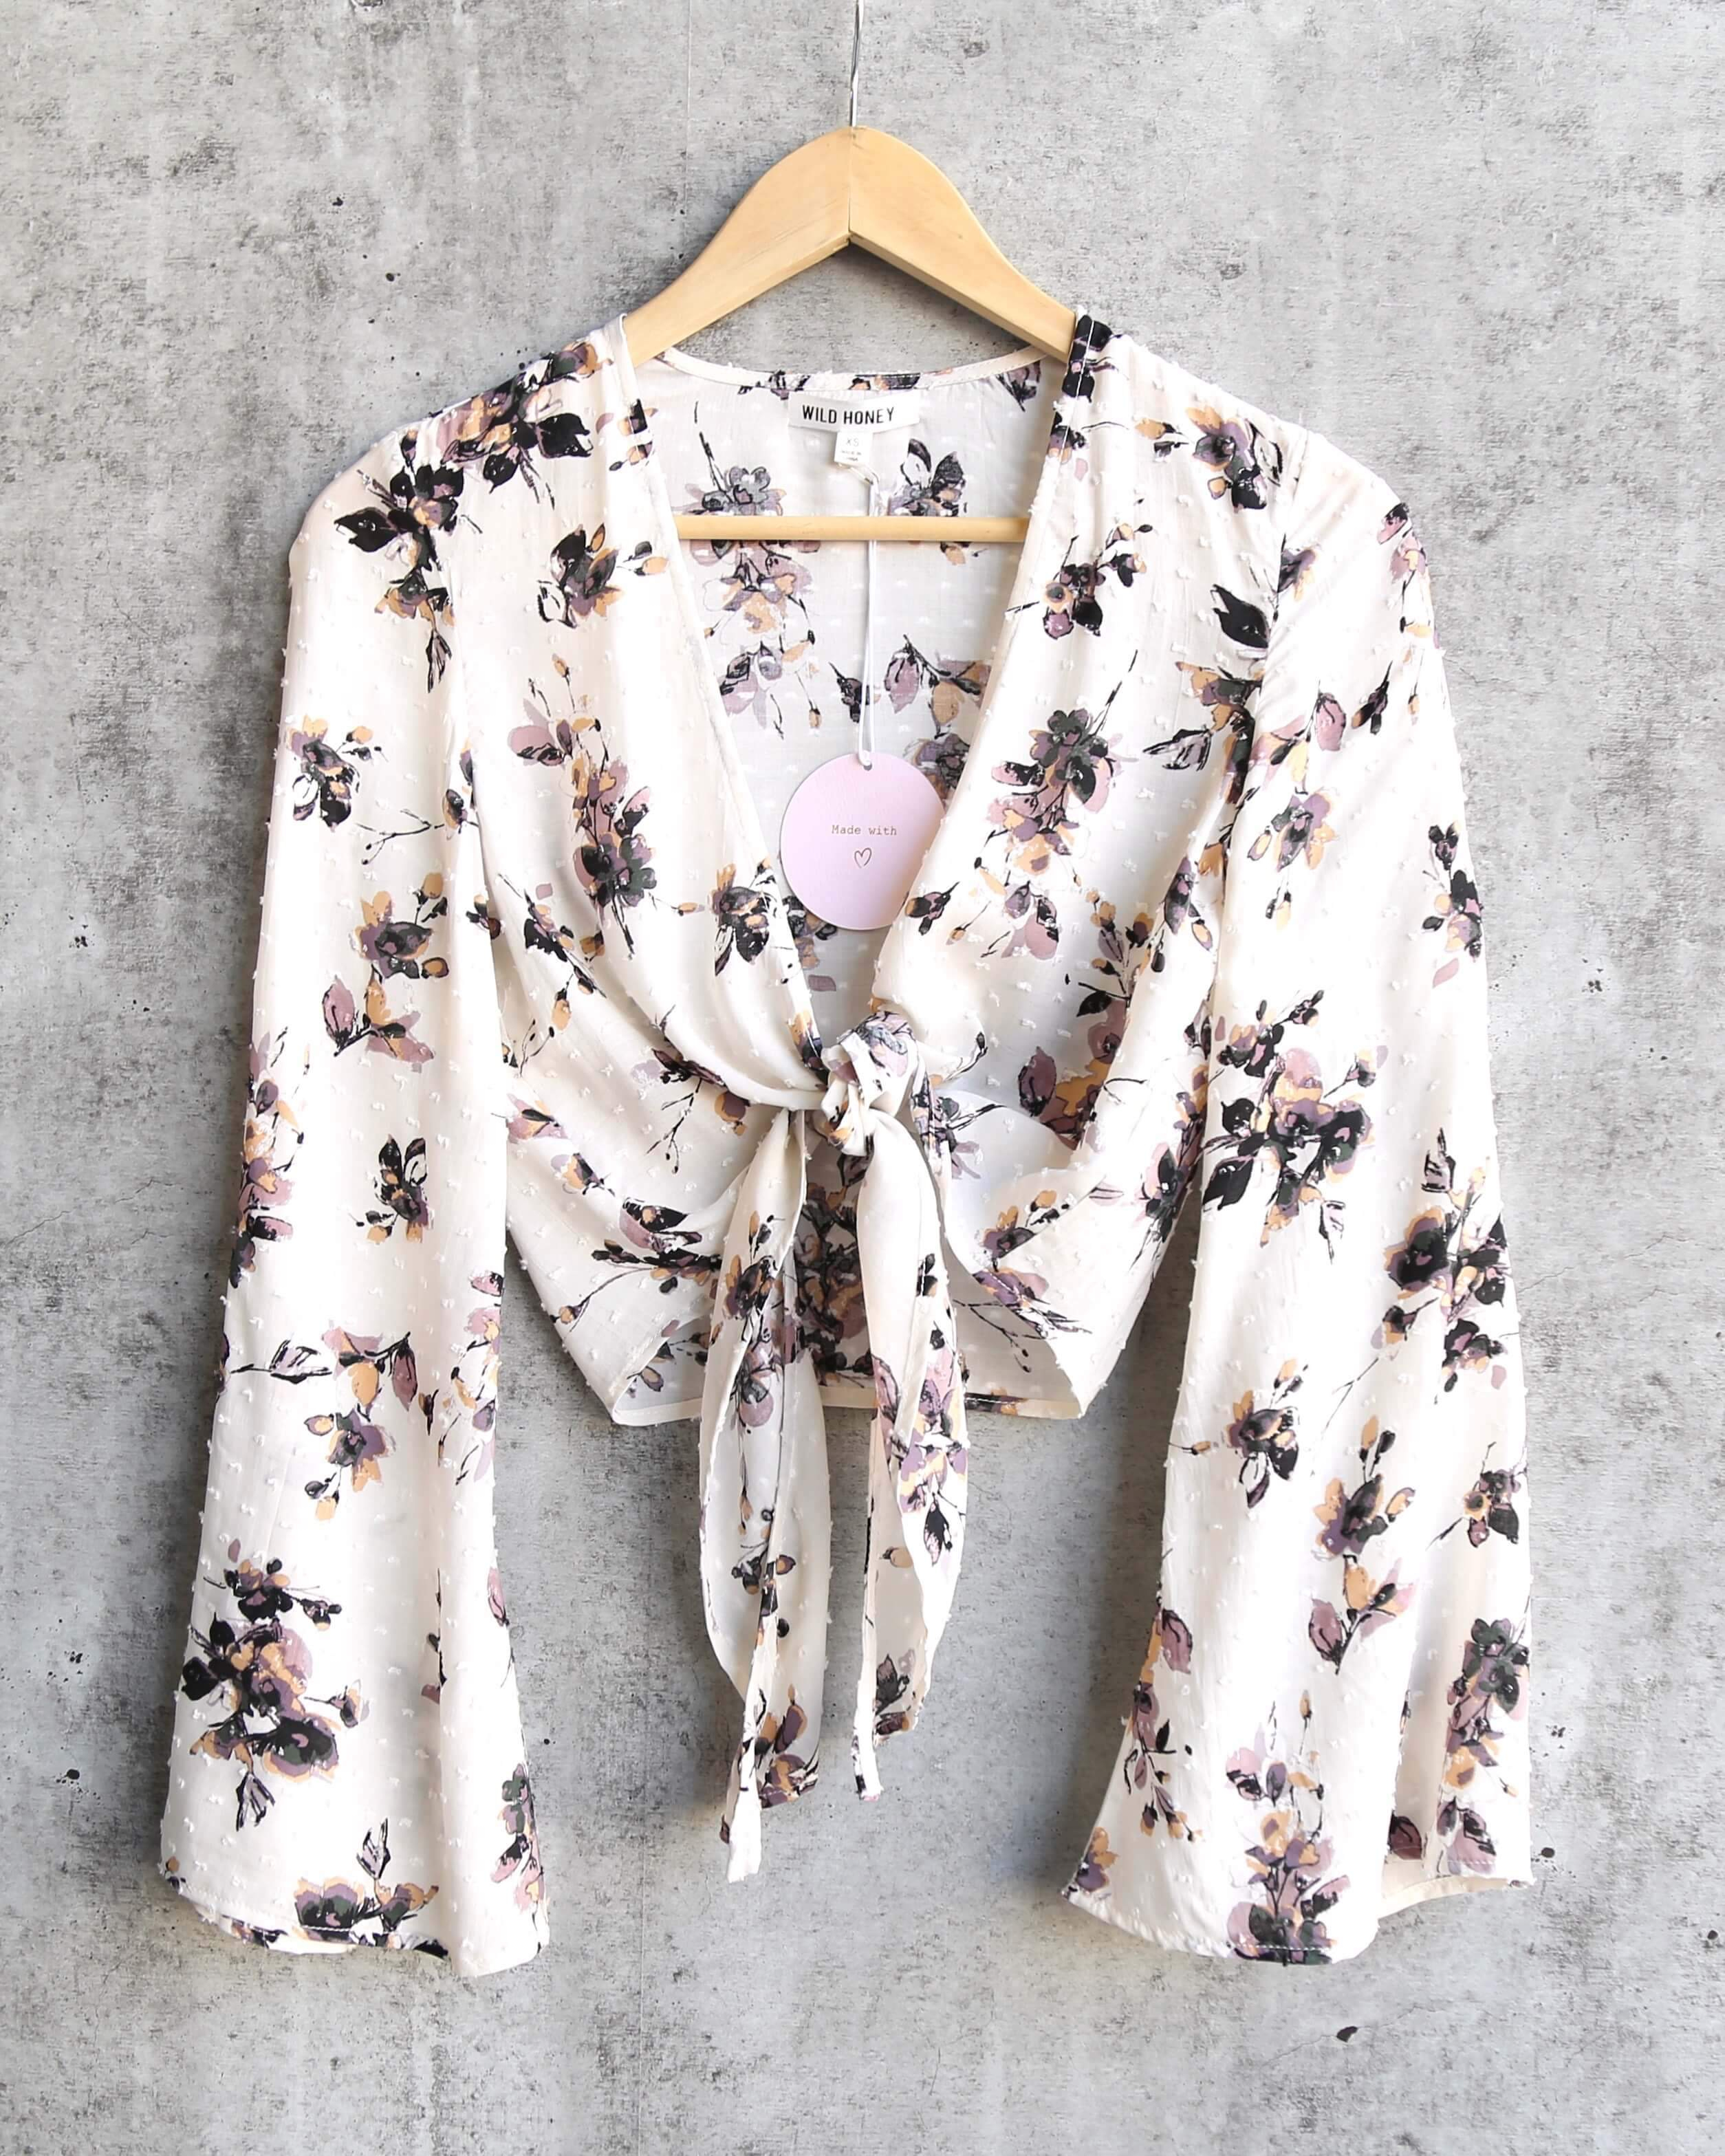 Image of FINAL SALE - Wild Honey - Long Sleeve Floral Crop Top with Waist Tie in Ivory